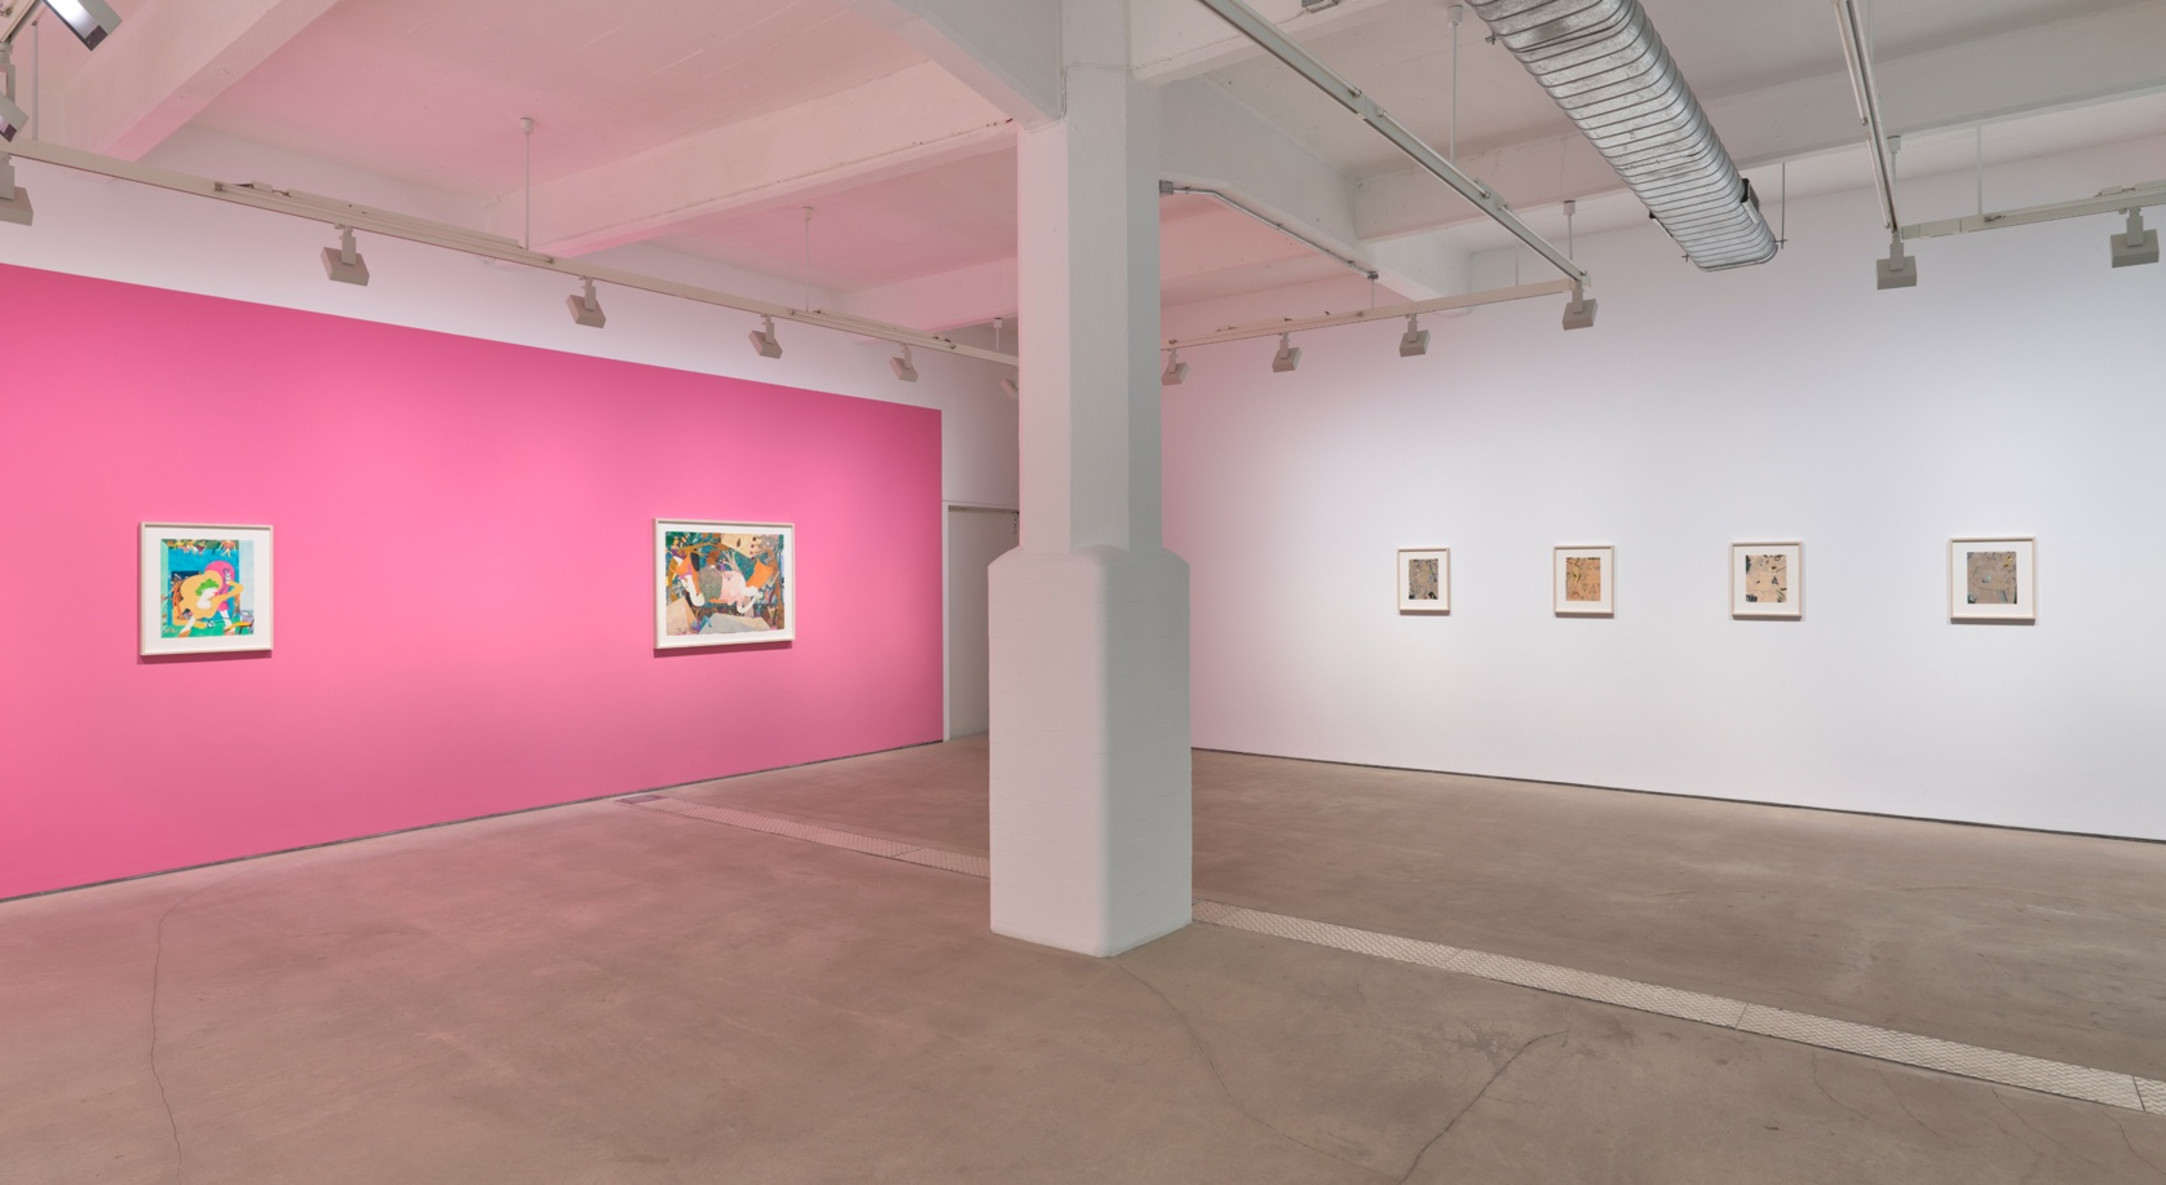 Installation view of Gladys Nilsson, Unencumbered, at Hales London